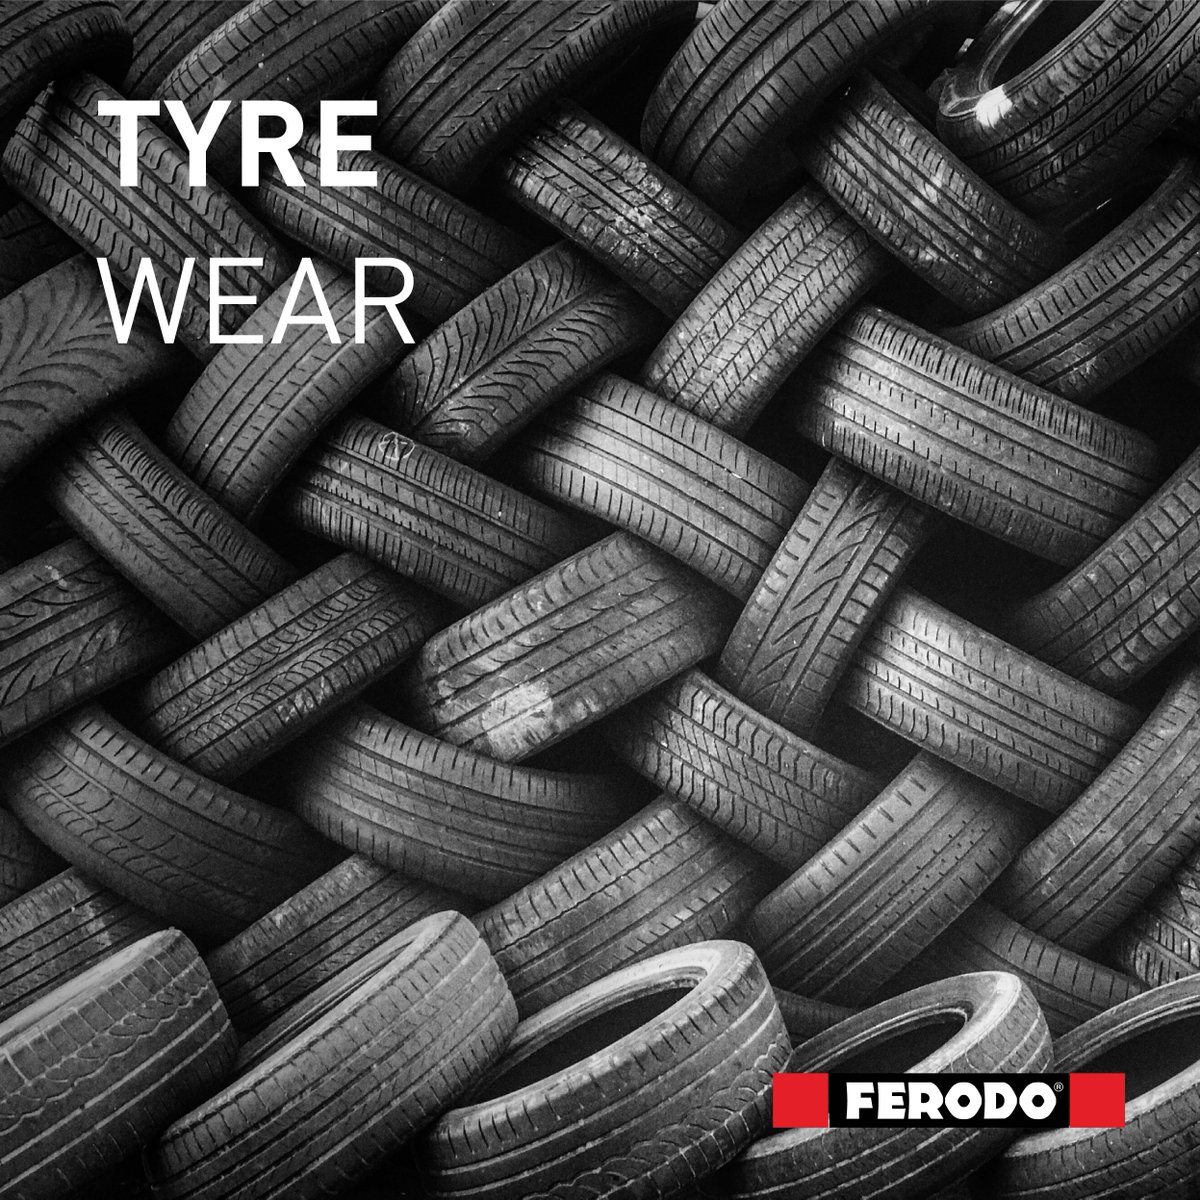 Tyres work in partnership with a vehicle's braking system to bring your vehicle to a stop quickly and effectively. On wet roads, the average stopping distance increases by a staggering 43 percent with a vehicle using worn tyres.#SouthAfrica #Storm #Safety https://t.co/U6xCTrxjek